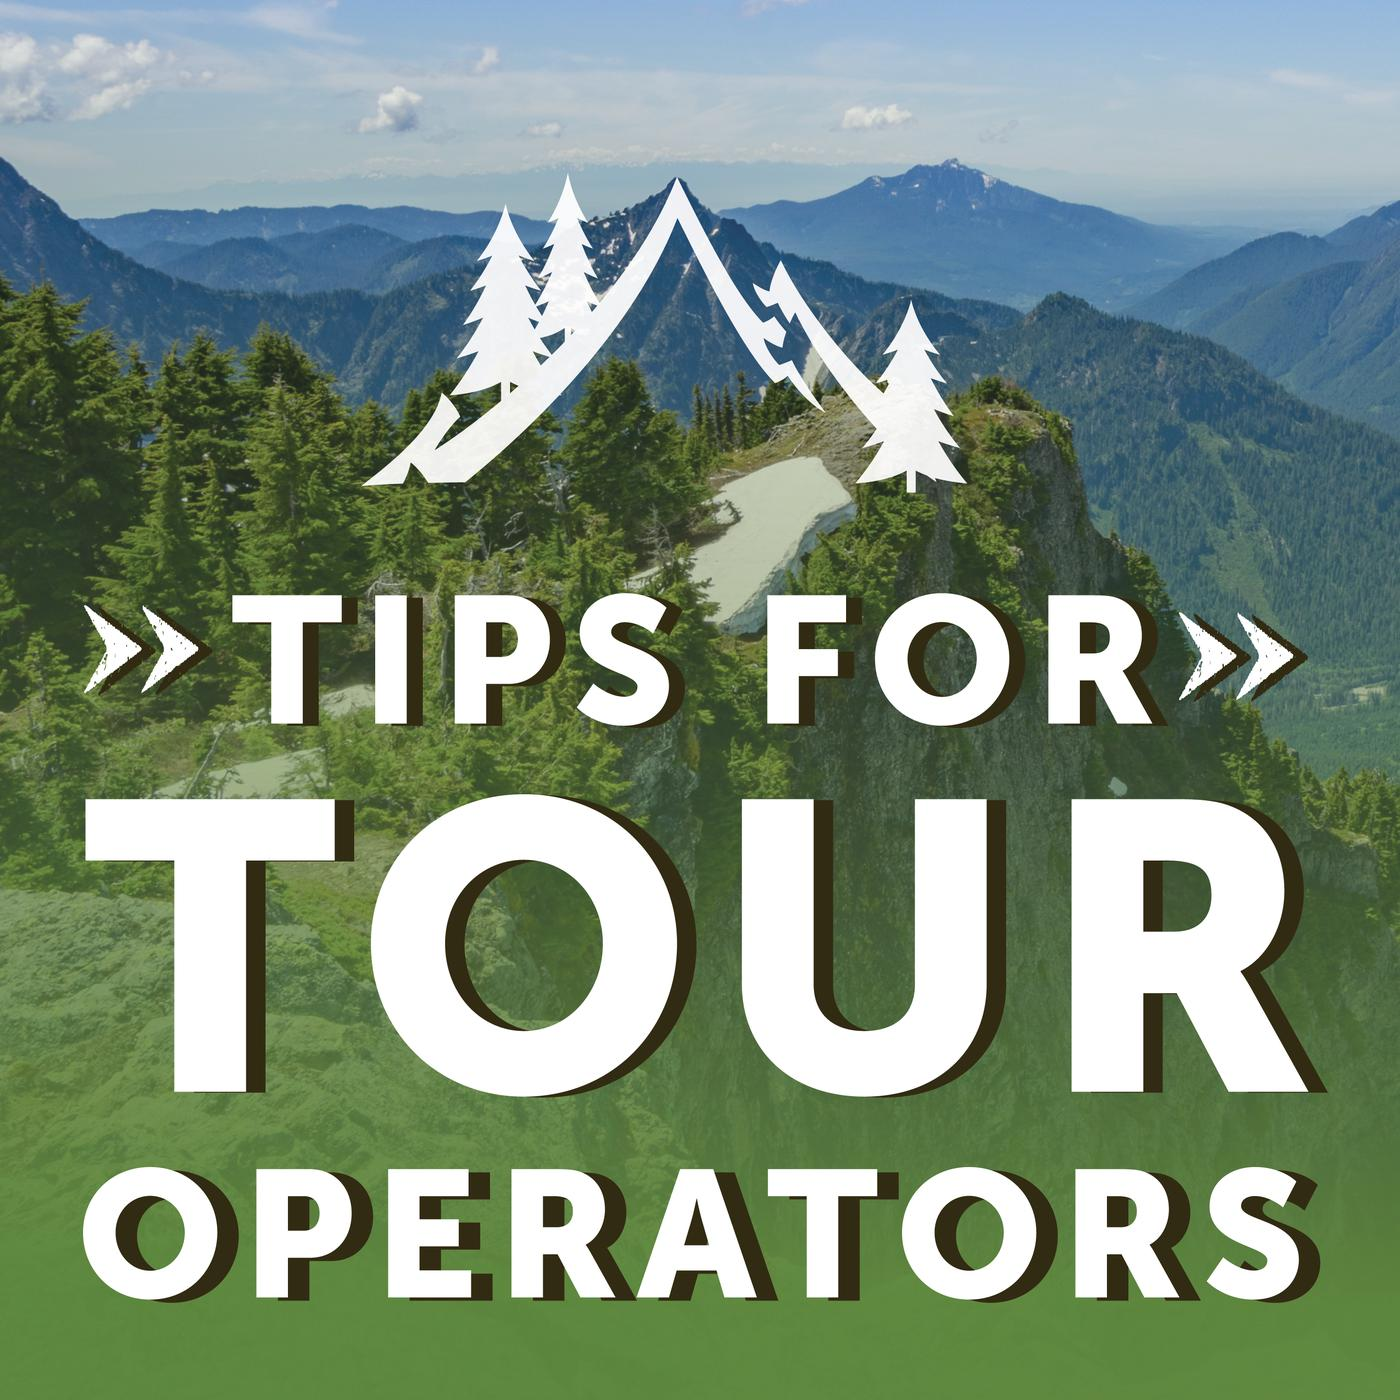 Tips for Tour Operators (podcast) - Outdoor Adventure